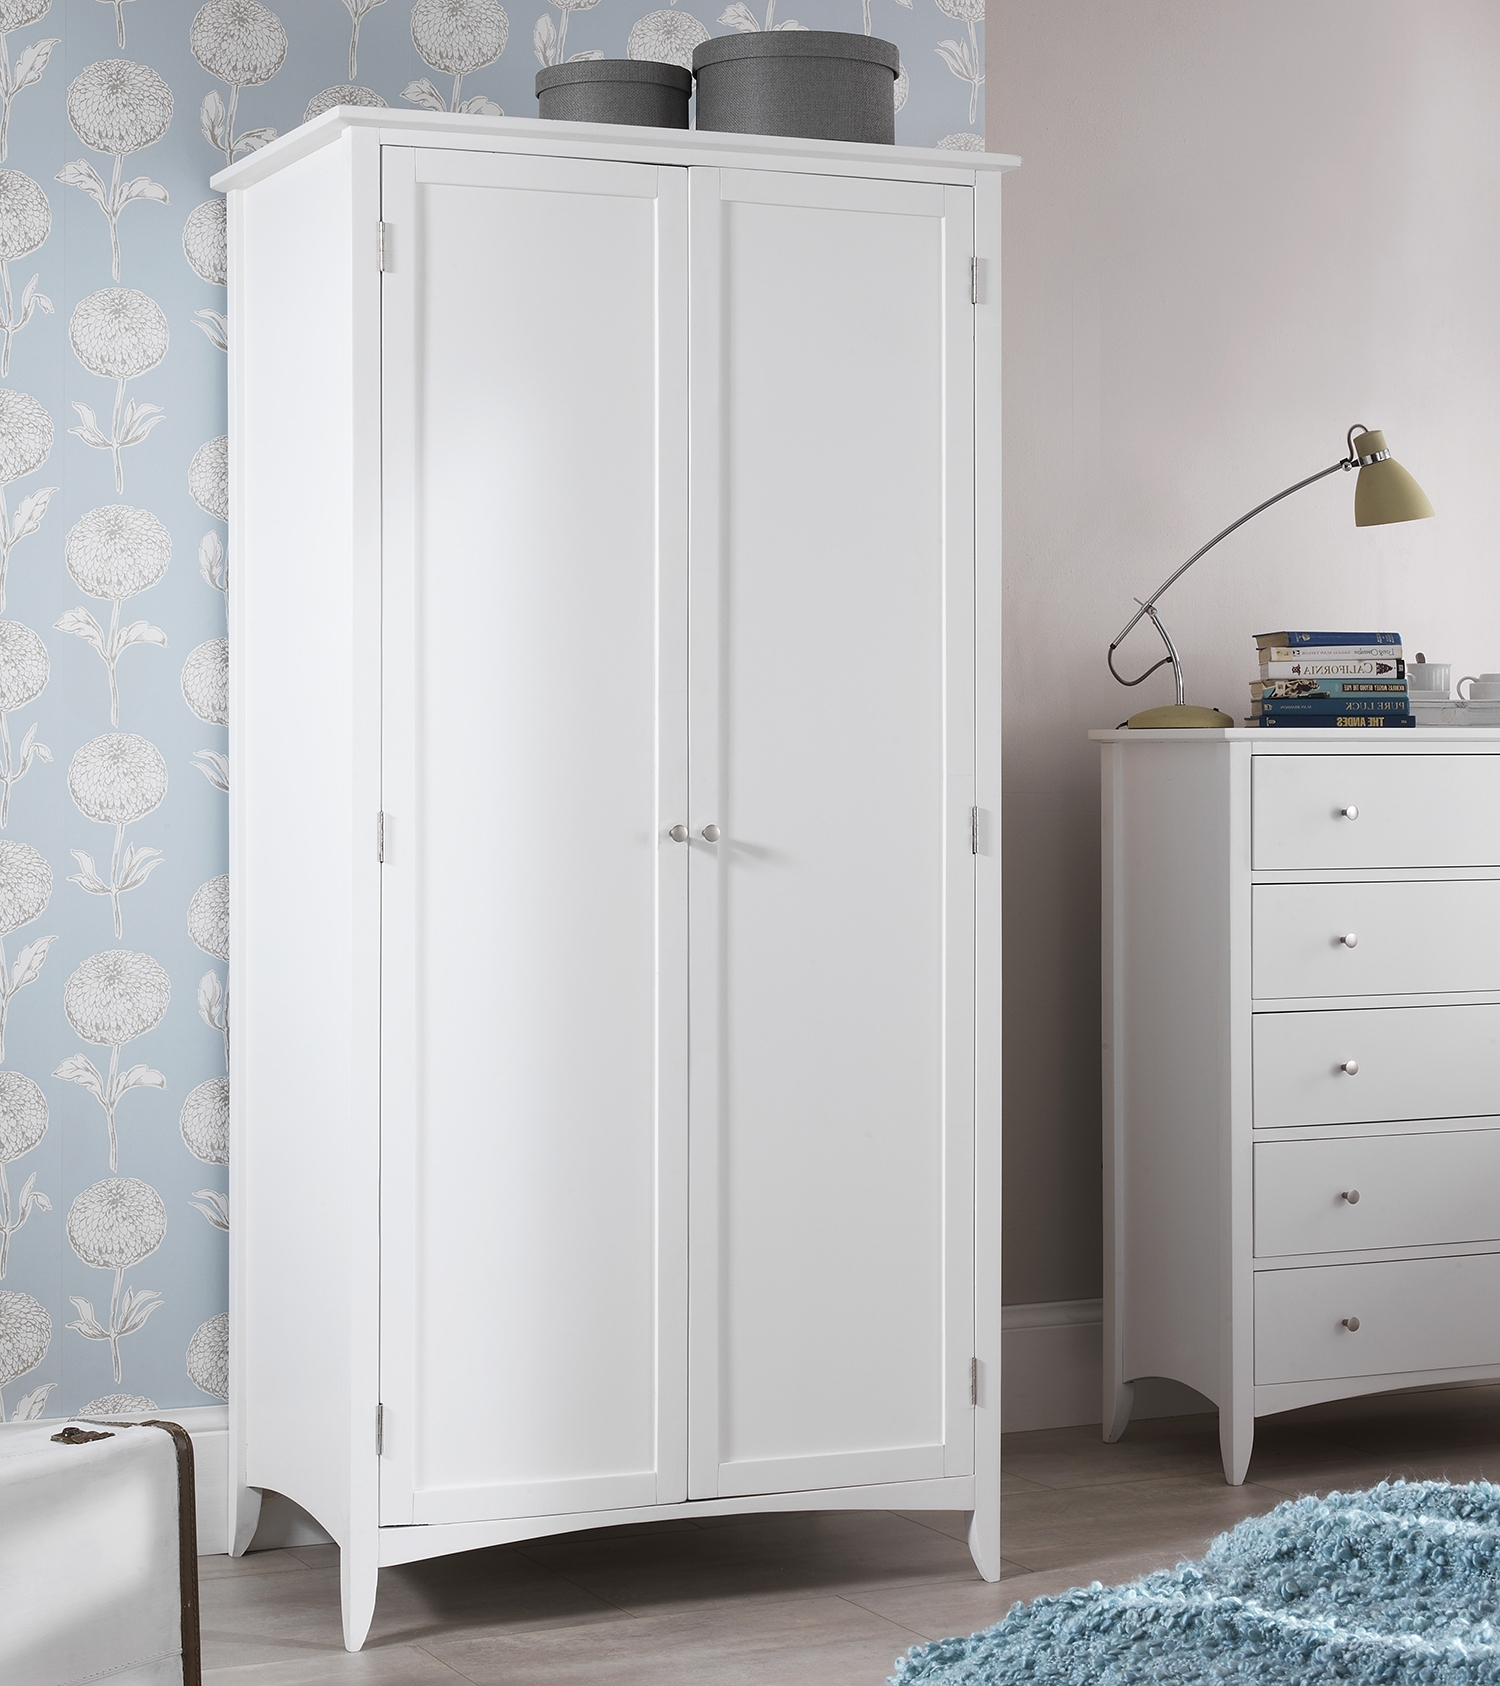 Large White Wardrobes With Drawers Intended For Popular Edward Hopper White Double Wardrobe, Quality Large Wardrobe, Shelf (View 4 of 15)